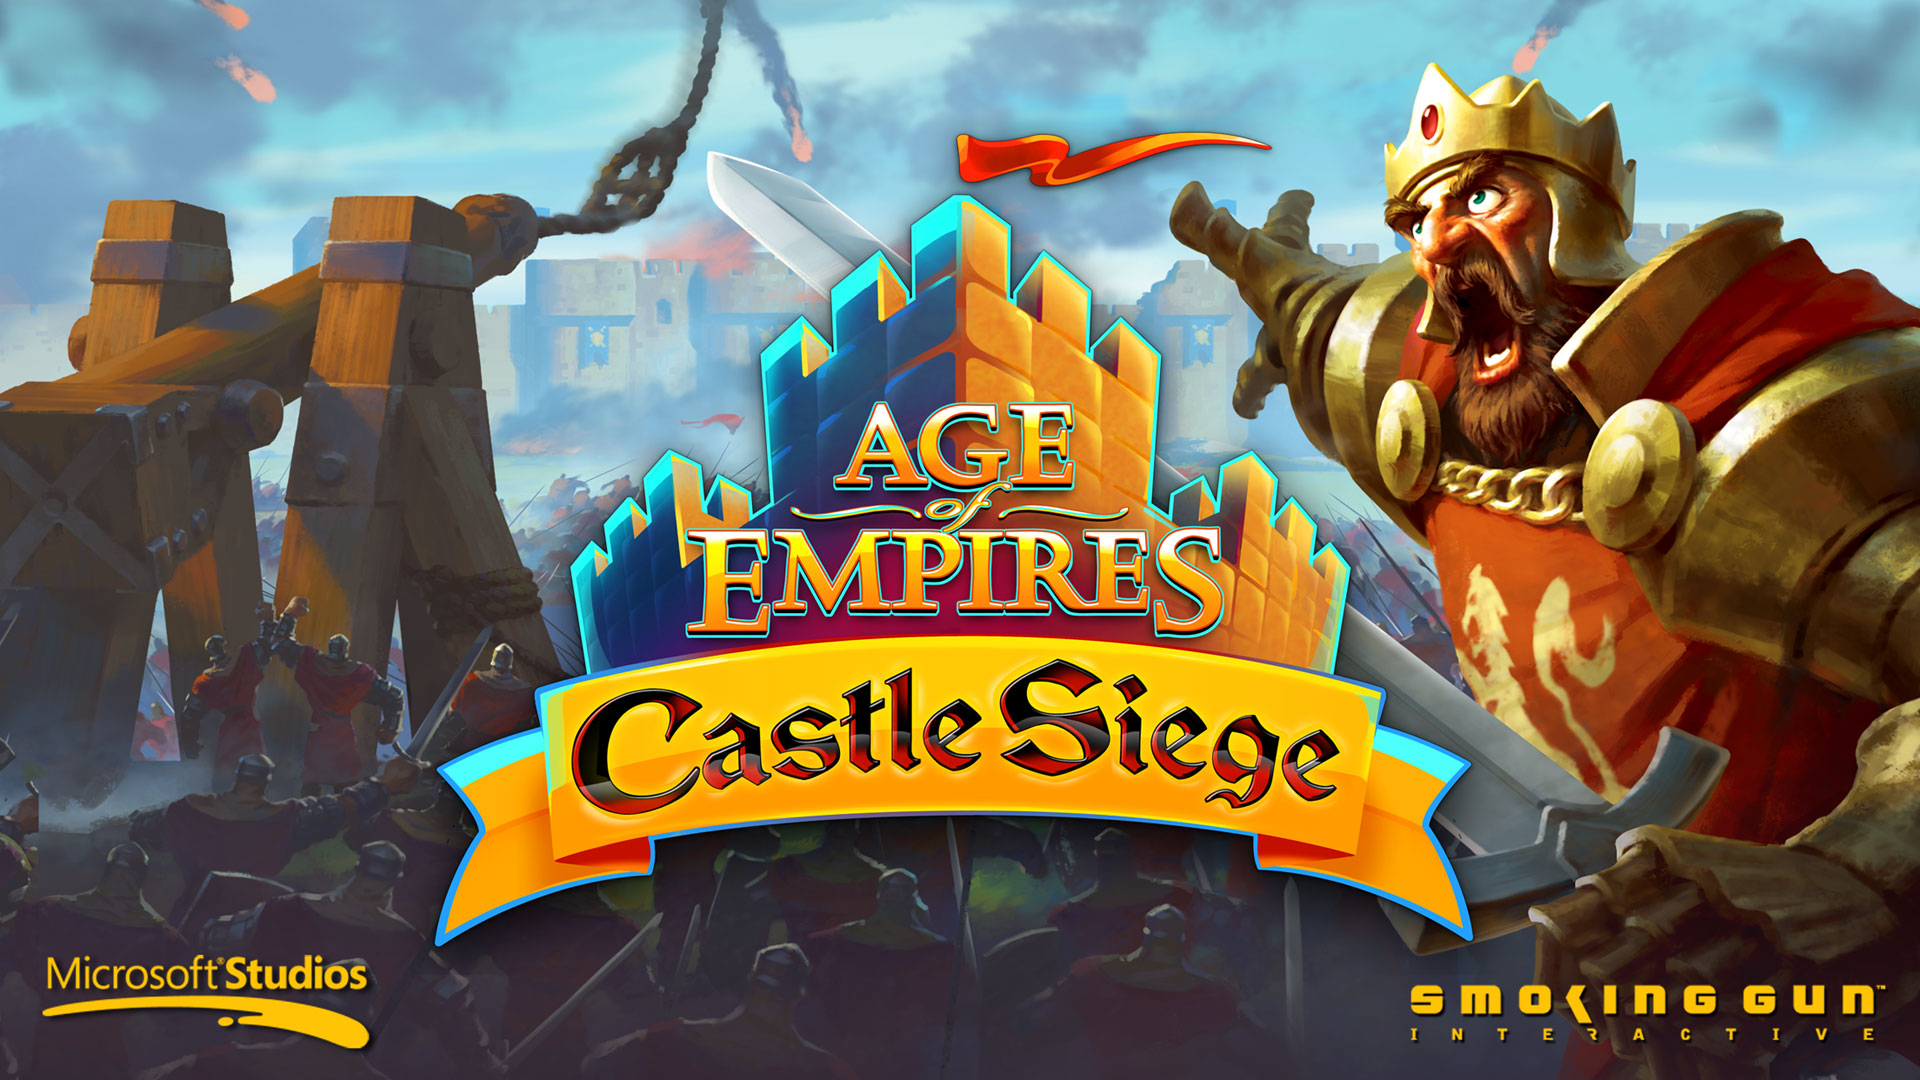 After a lengthty delay, Age of Empires: Castle Siege is finally out on Android